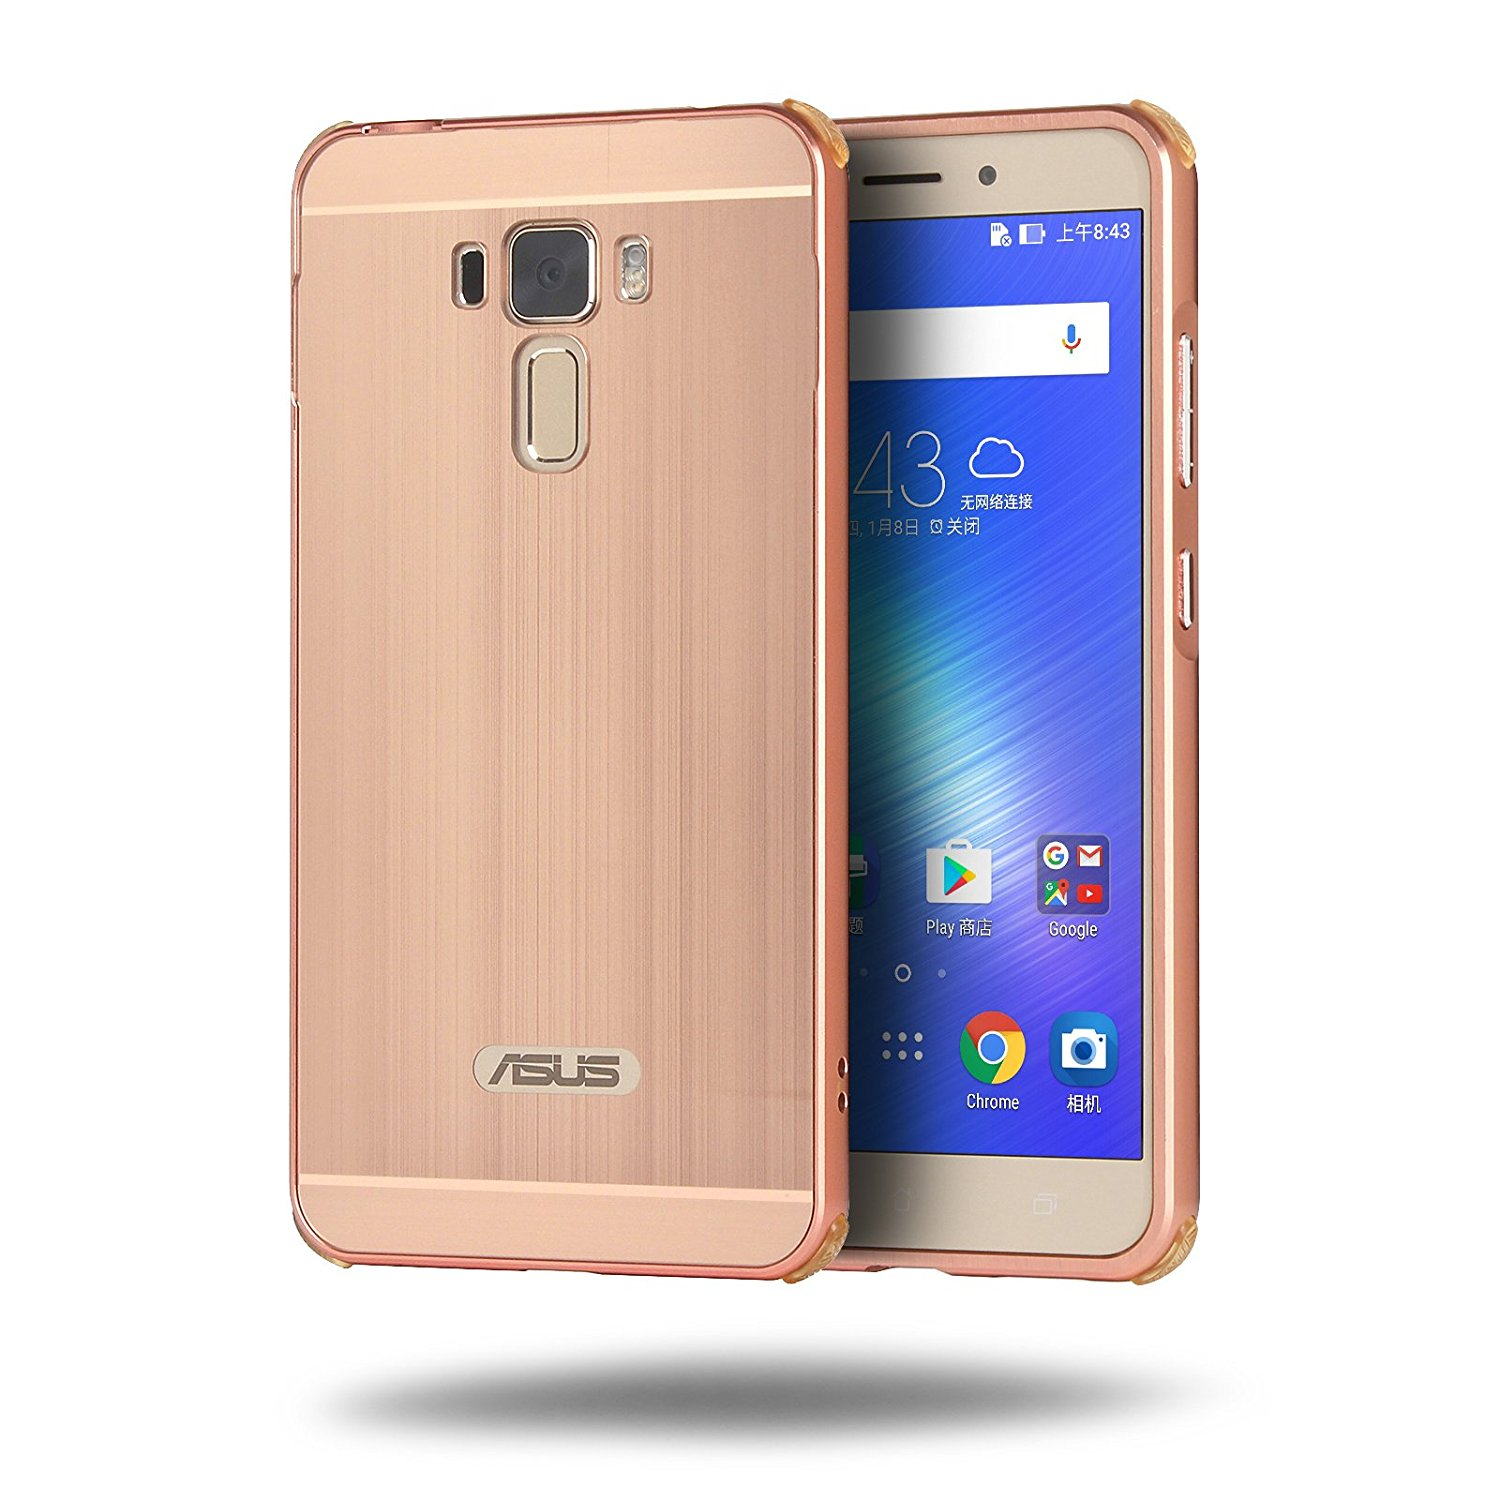 huge discount 62302 86bd1 Top 8 Best ASUS Zenfone 3 Laser Cases And Covers